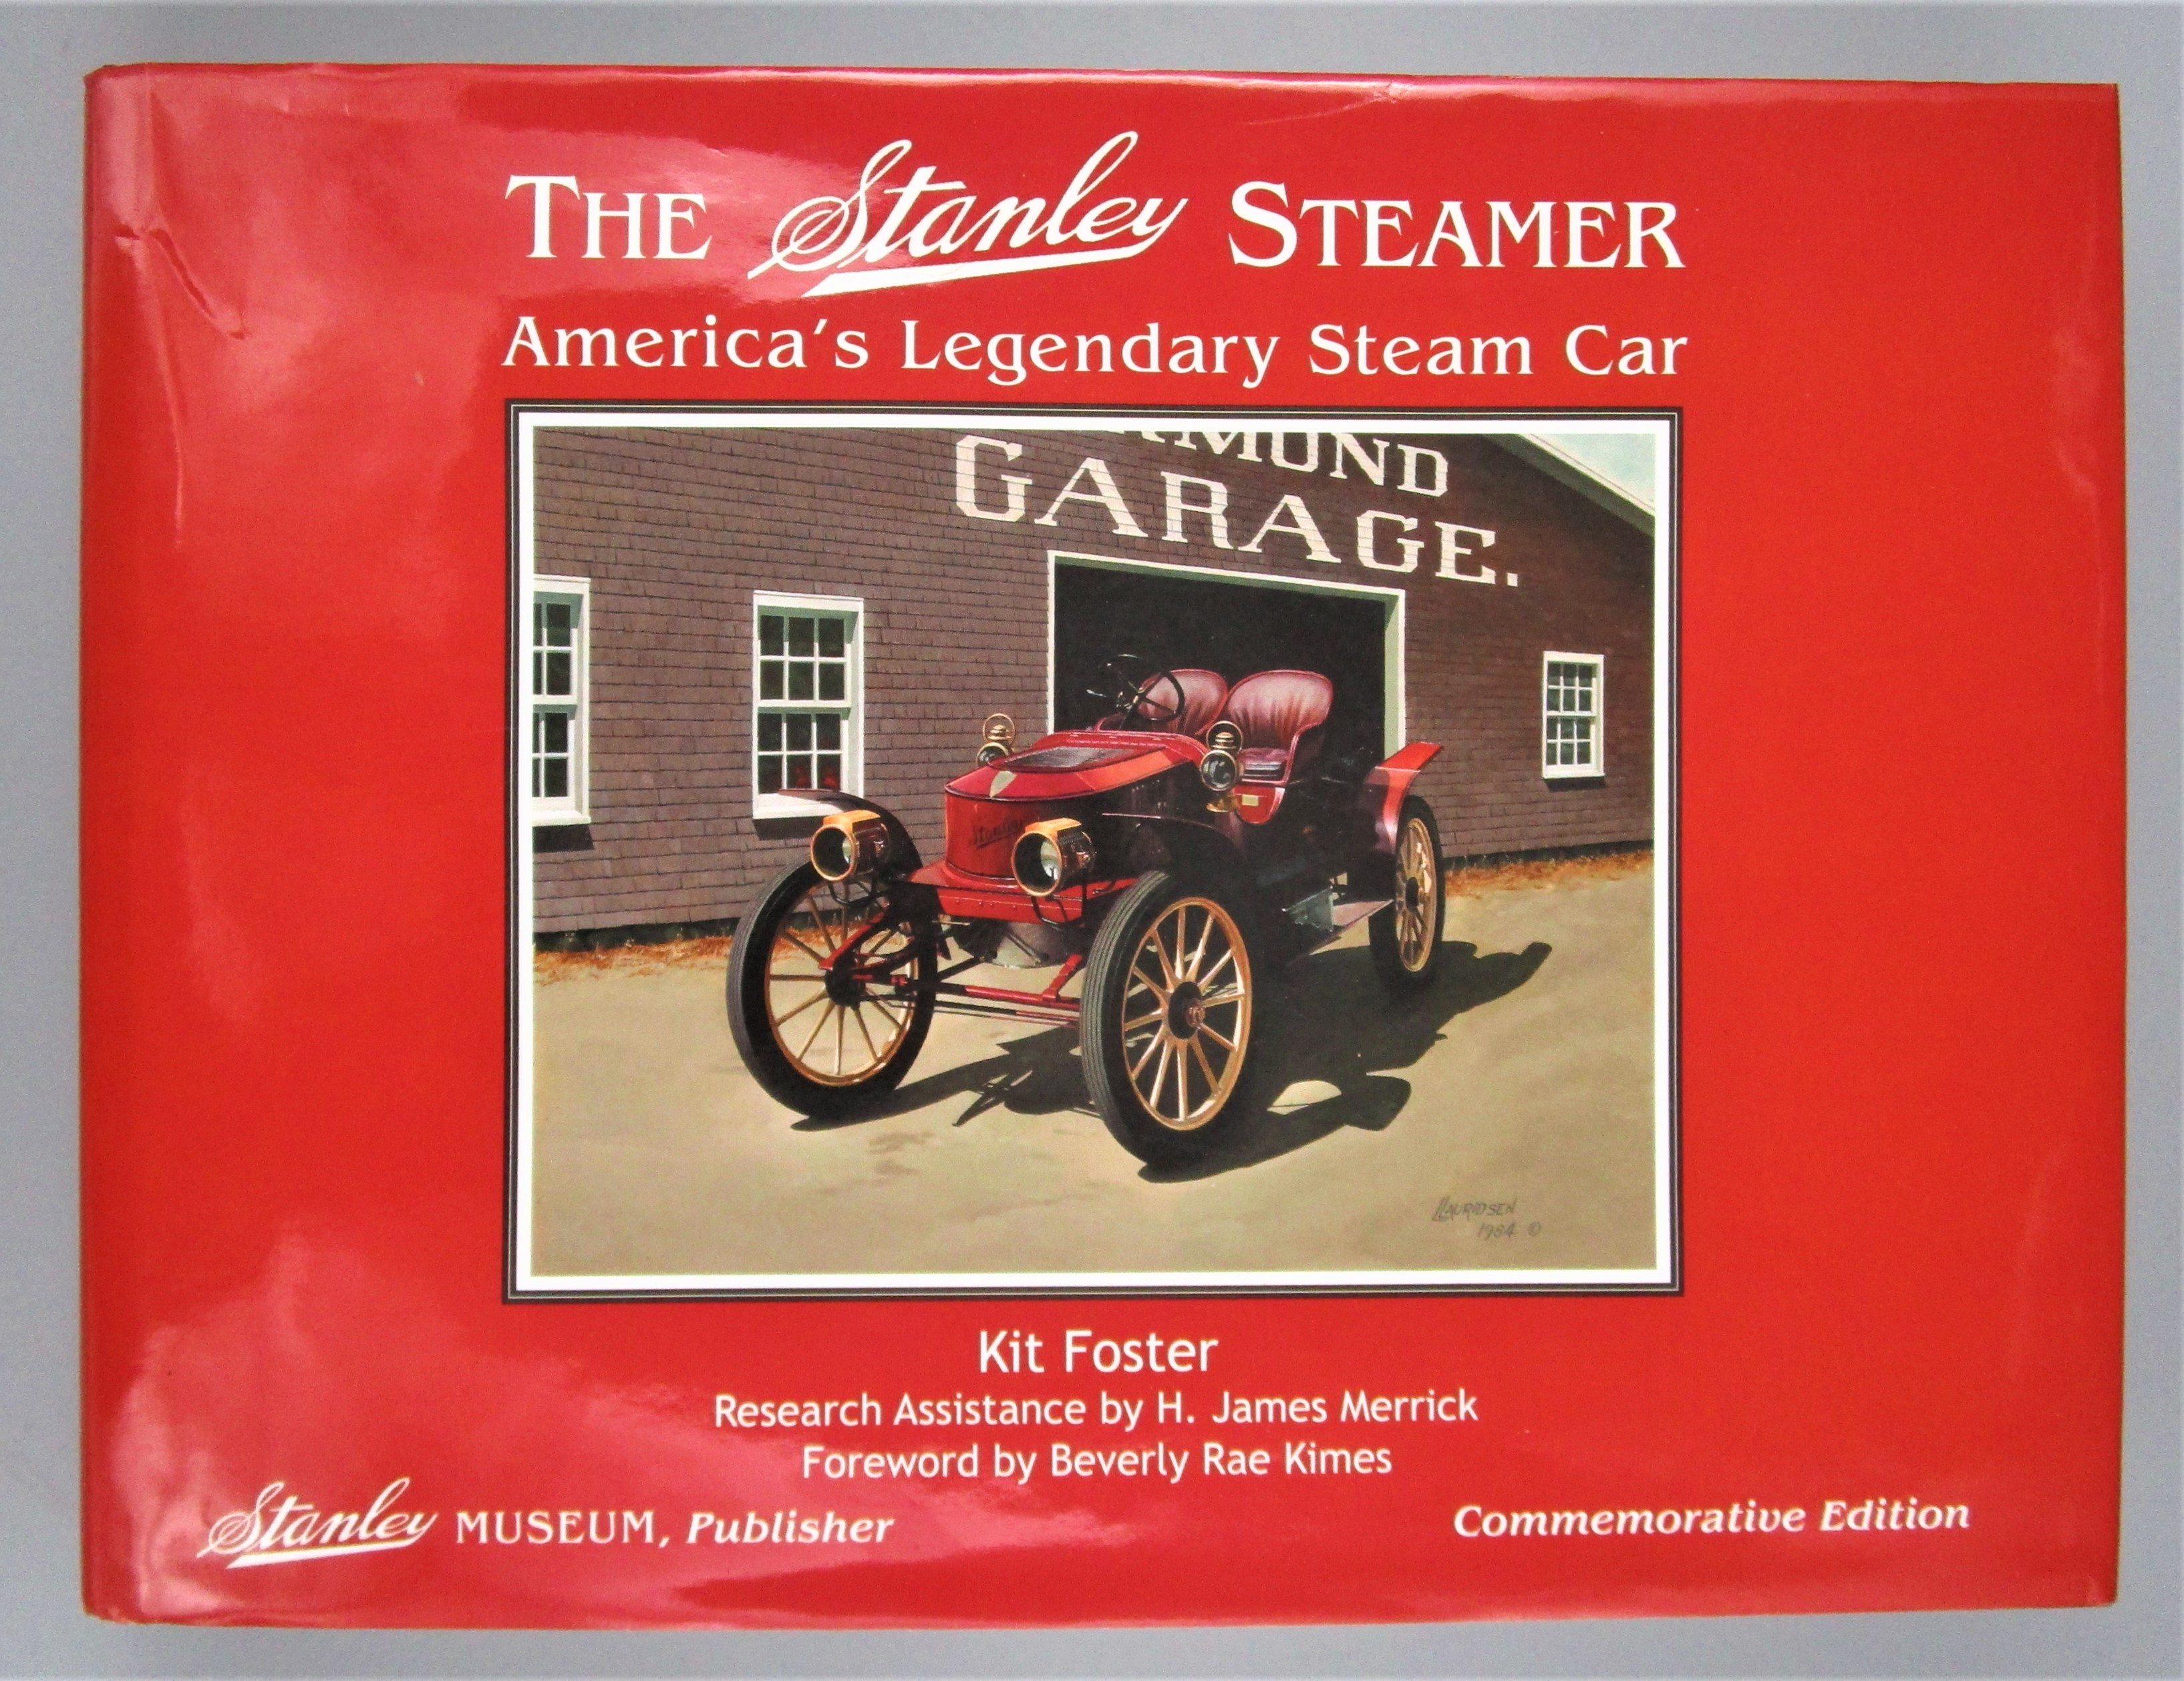 THE STANLEY STEAMER: AMERICA'S LEGENDARY STEAM CAR, by Kit Foster - 2004